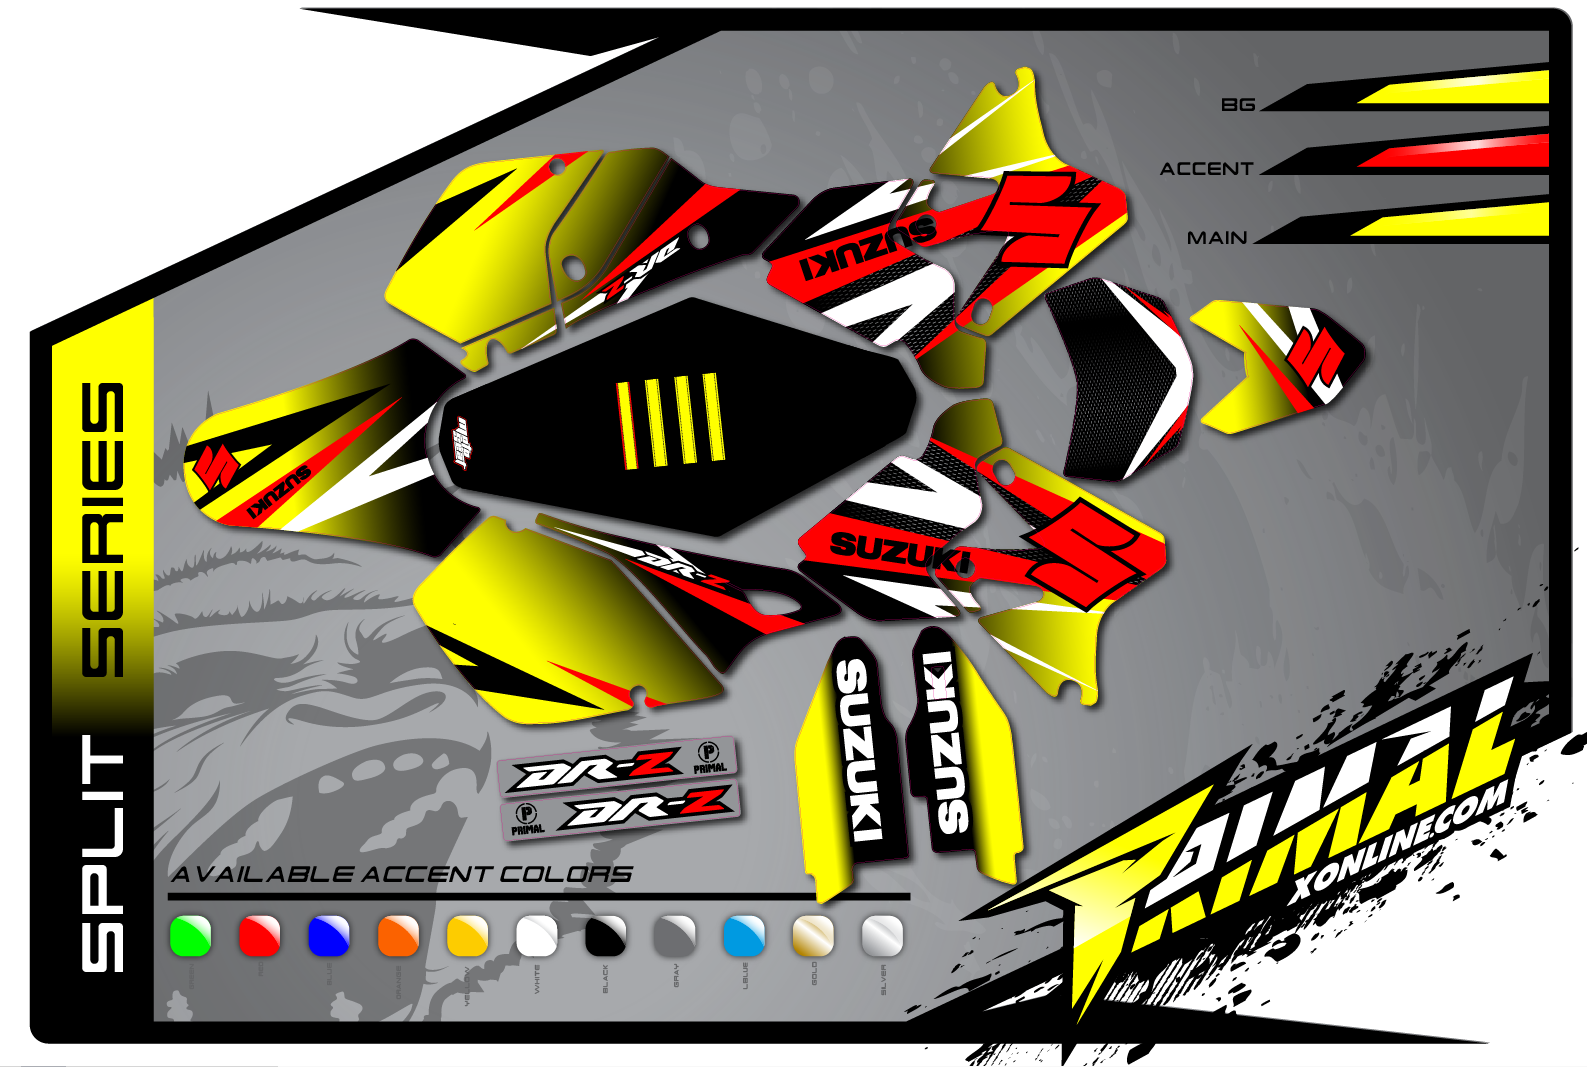 primal-x-motorsports-mx-graphics-suzuki-drz400-drz400sm-split-series-motocross-graphics-motocross-decals